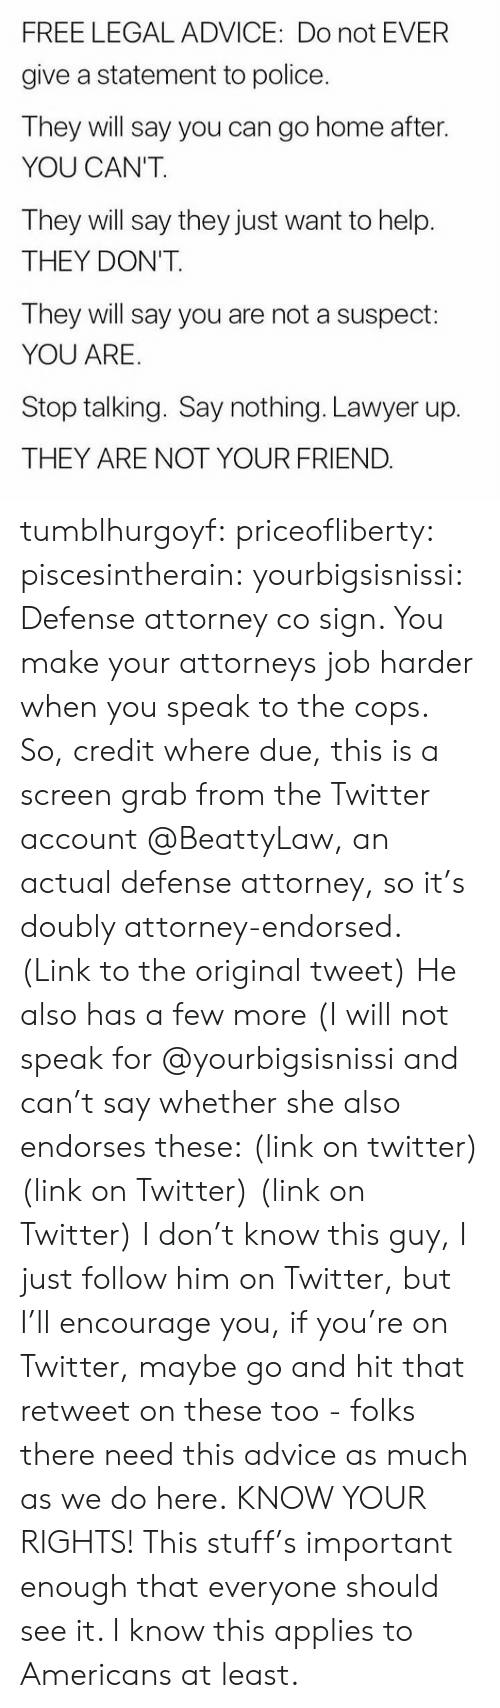 Advice, Lawyer, and Police: FREE LEGAL ADVICE: Do not EVER  give a statement to police  They will say you can go home after.  YOU CAN'T  They will say they just want to help.  THEY DON'T.  They will say you are not a suspect:  YOU ARE  Stop talking. Say nothing. Lawyer up.  THEY ARE NOT YOUR FRIEND tumblhurgoyf: priceofliberty:  piscesintherain:  yourbigsisnissi:  Defense attorney co sign.  You make your attorneys job harder when you speak to the cops.   So, credit where due, this is a screen grab from the Twitter account @BeattyLaw, an actual defense attorney, so it's doubly attorney-endorsed. (Link to the original tweet) He also has a few more (I will not speak for @yourbigsisnissi and can't say whether she also endorses these: (link on twitter) (link on Twitter) (link on Twitter) I don't know this guy, I just follow him on Twitter, but I'll encourage you, if you're on Twitter, maybe go and hit that retweet on these too - folks there need this advice as much as we do here.  KNOW YOUR RIGHTS!  This stuff's important enough that everyone should see it. I know this applies to Americans at least.